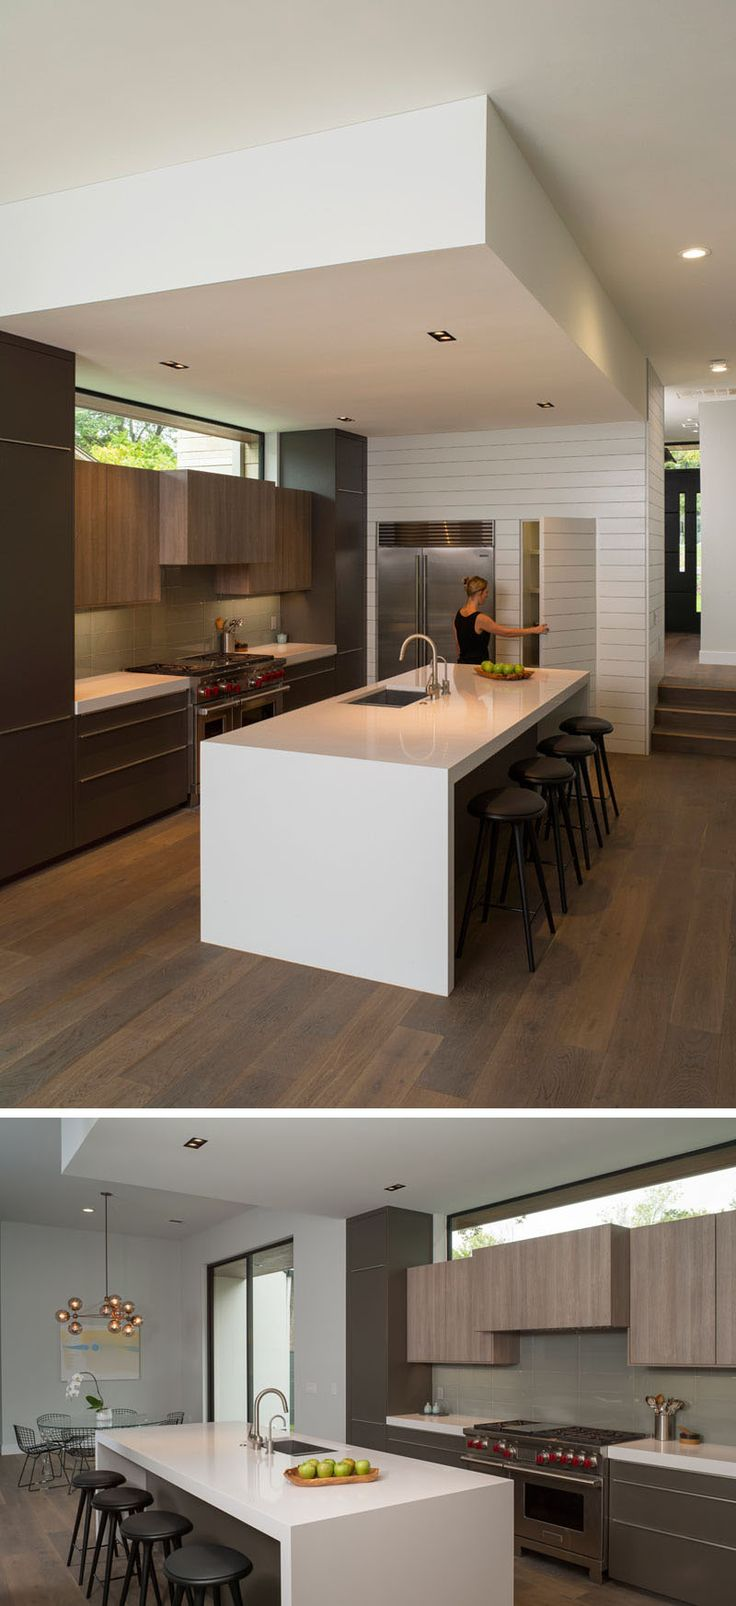 In this modern kitchen, the large white island with seating has plenty of room for guests to sit and chat, and a pantry is hidden sits beside the fridge.